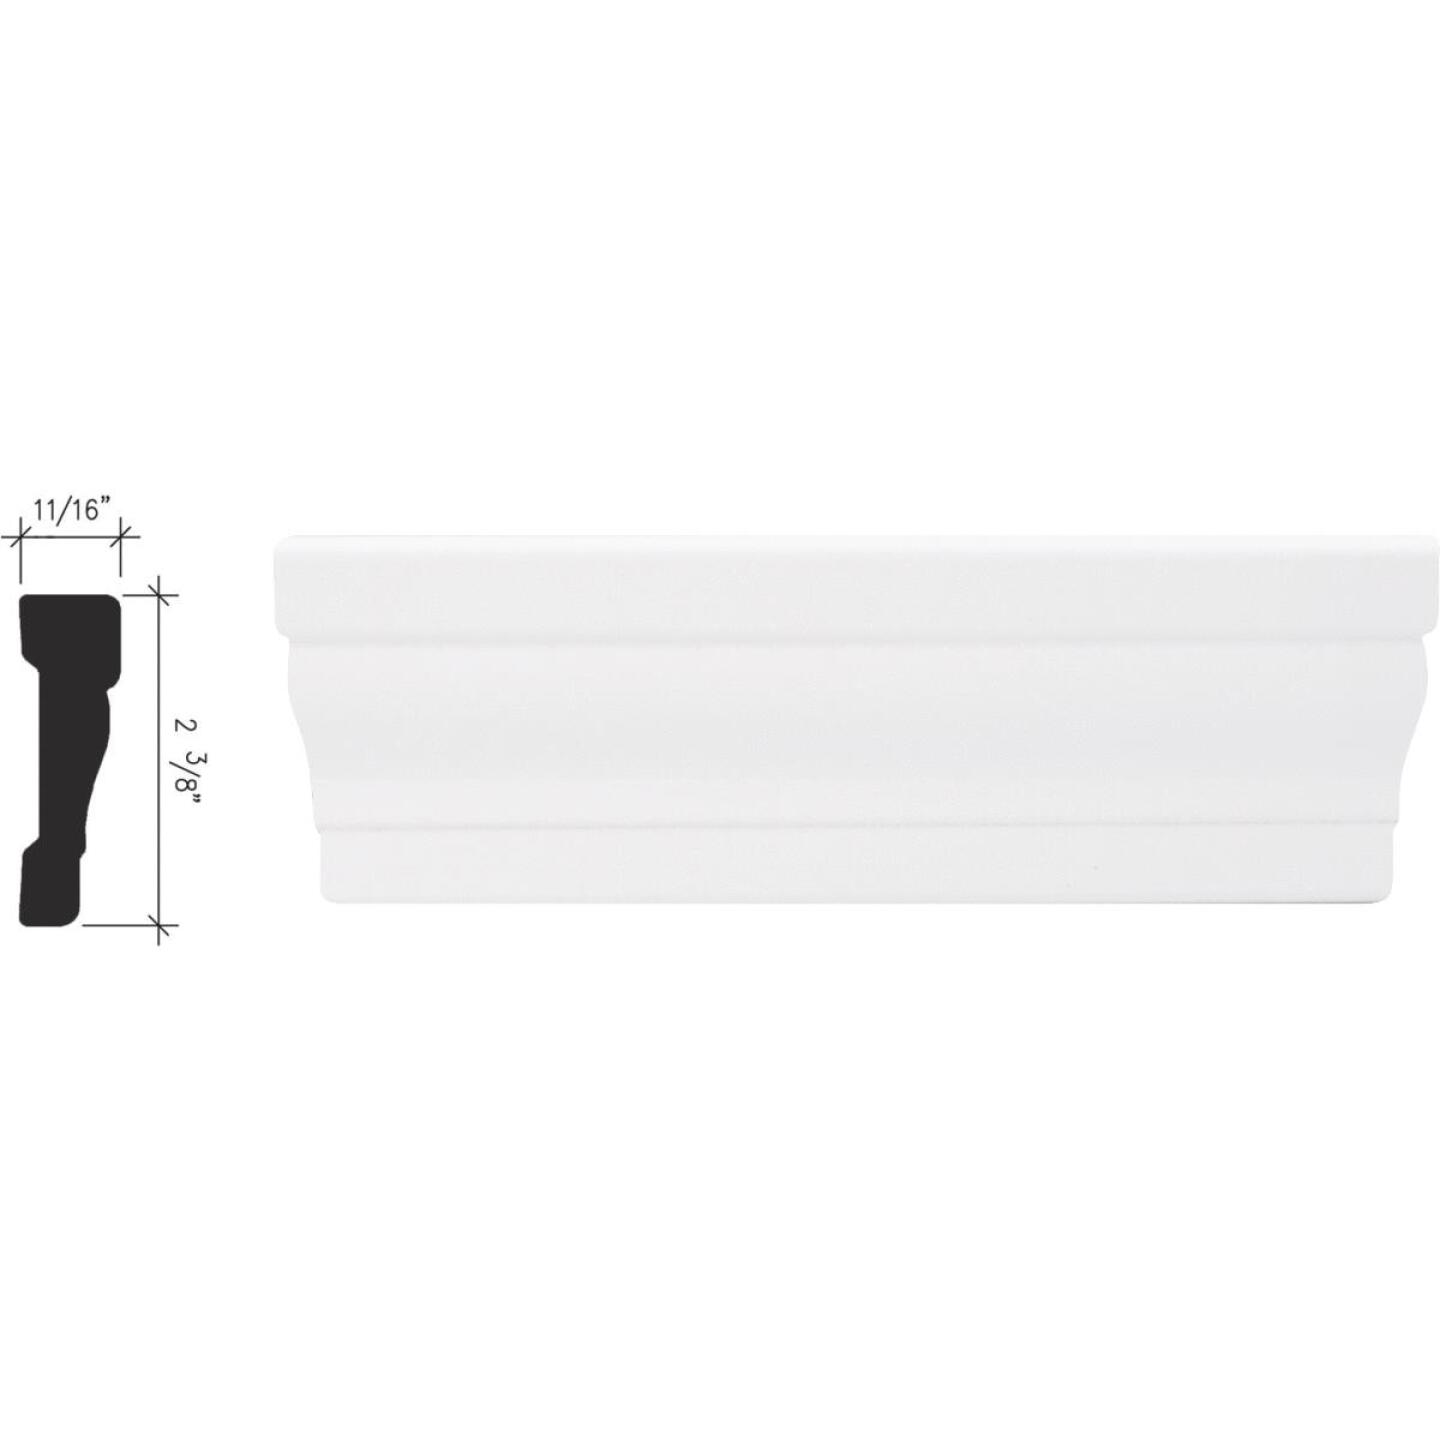 Inteplast Building Products 11/16 In. W. x 2-3/8 In. H. x 7 Ft. L. Crystal White Polystyrene Colonial Casing Image 1